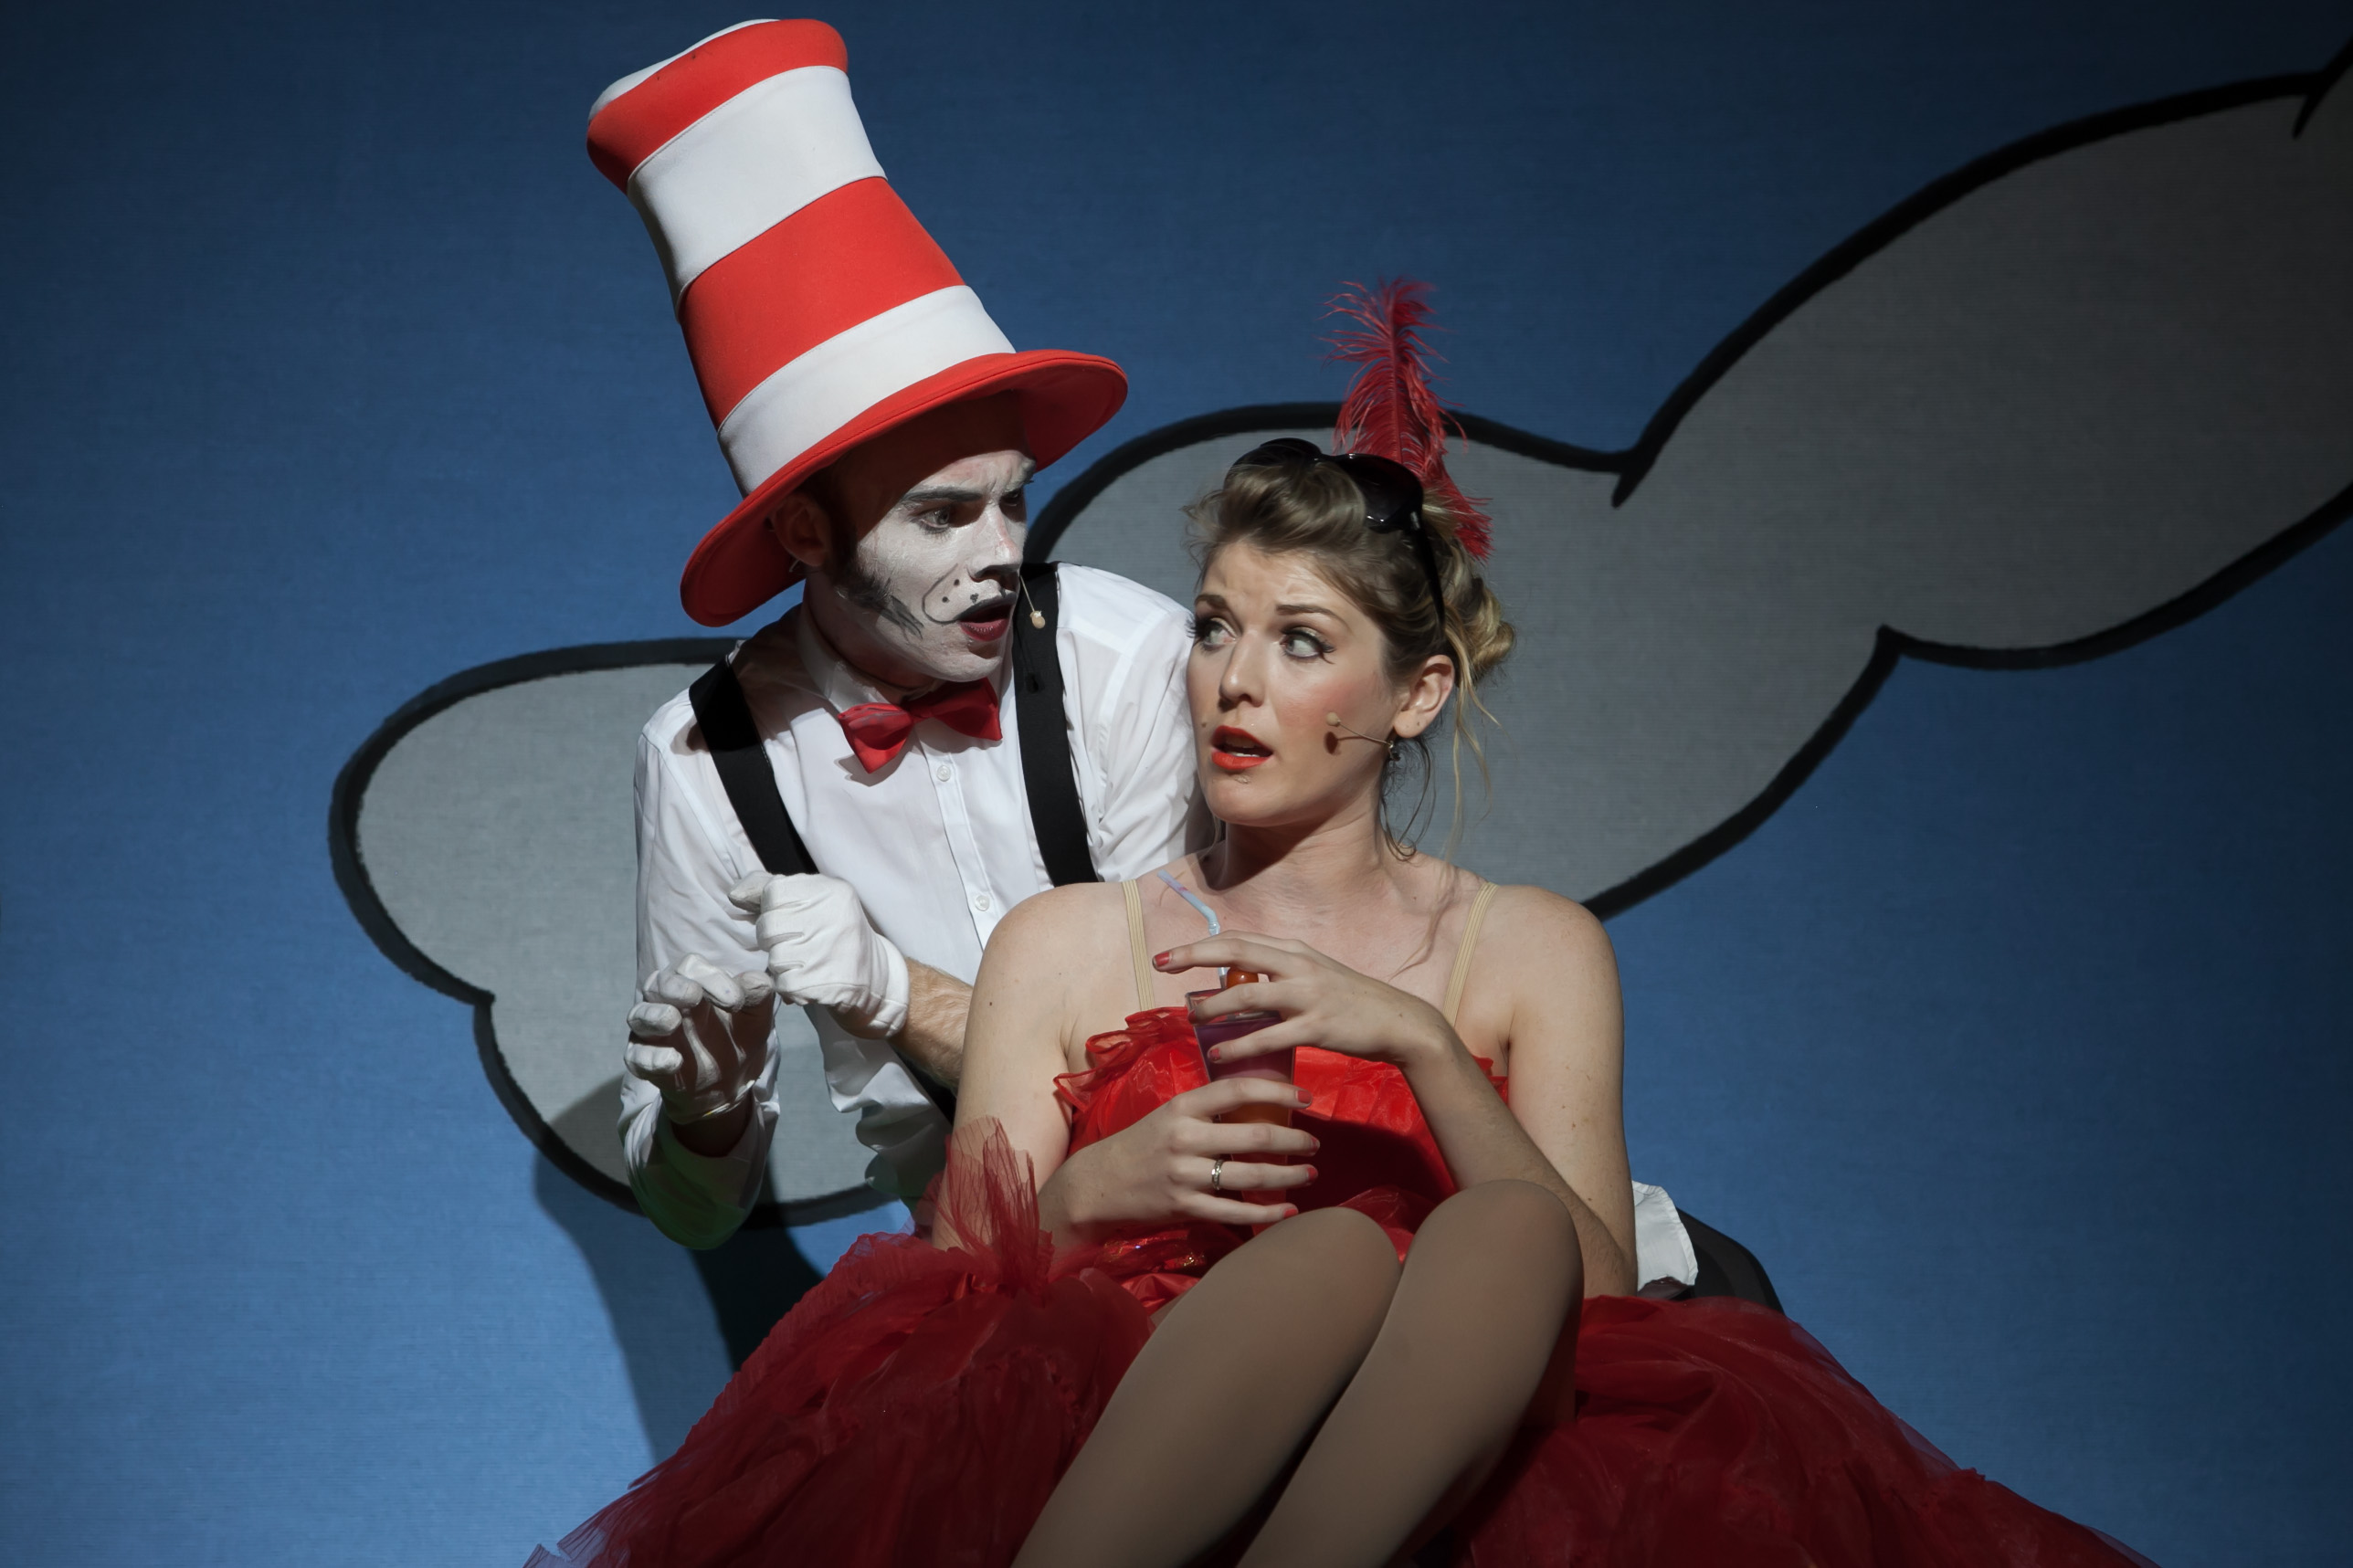 [Giveaway] The world of Dr. Seuss comes alive at Seussical the Musical! - Alvinology